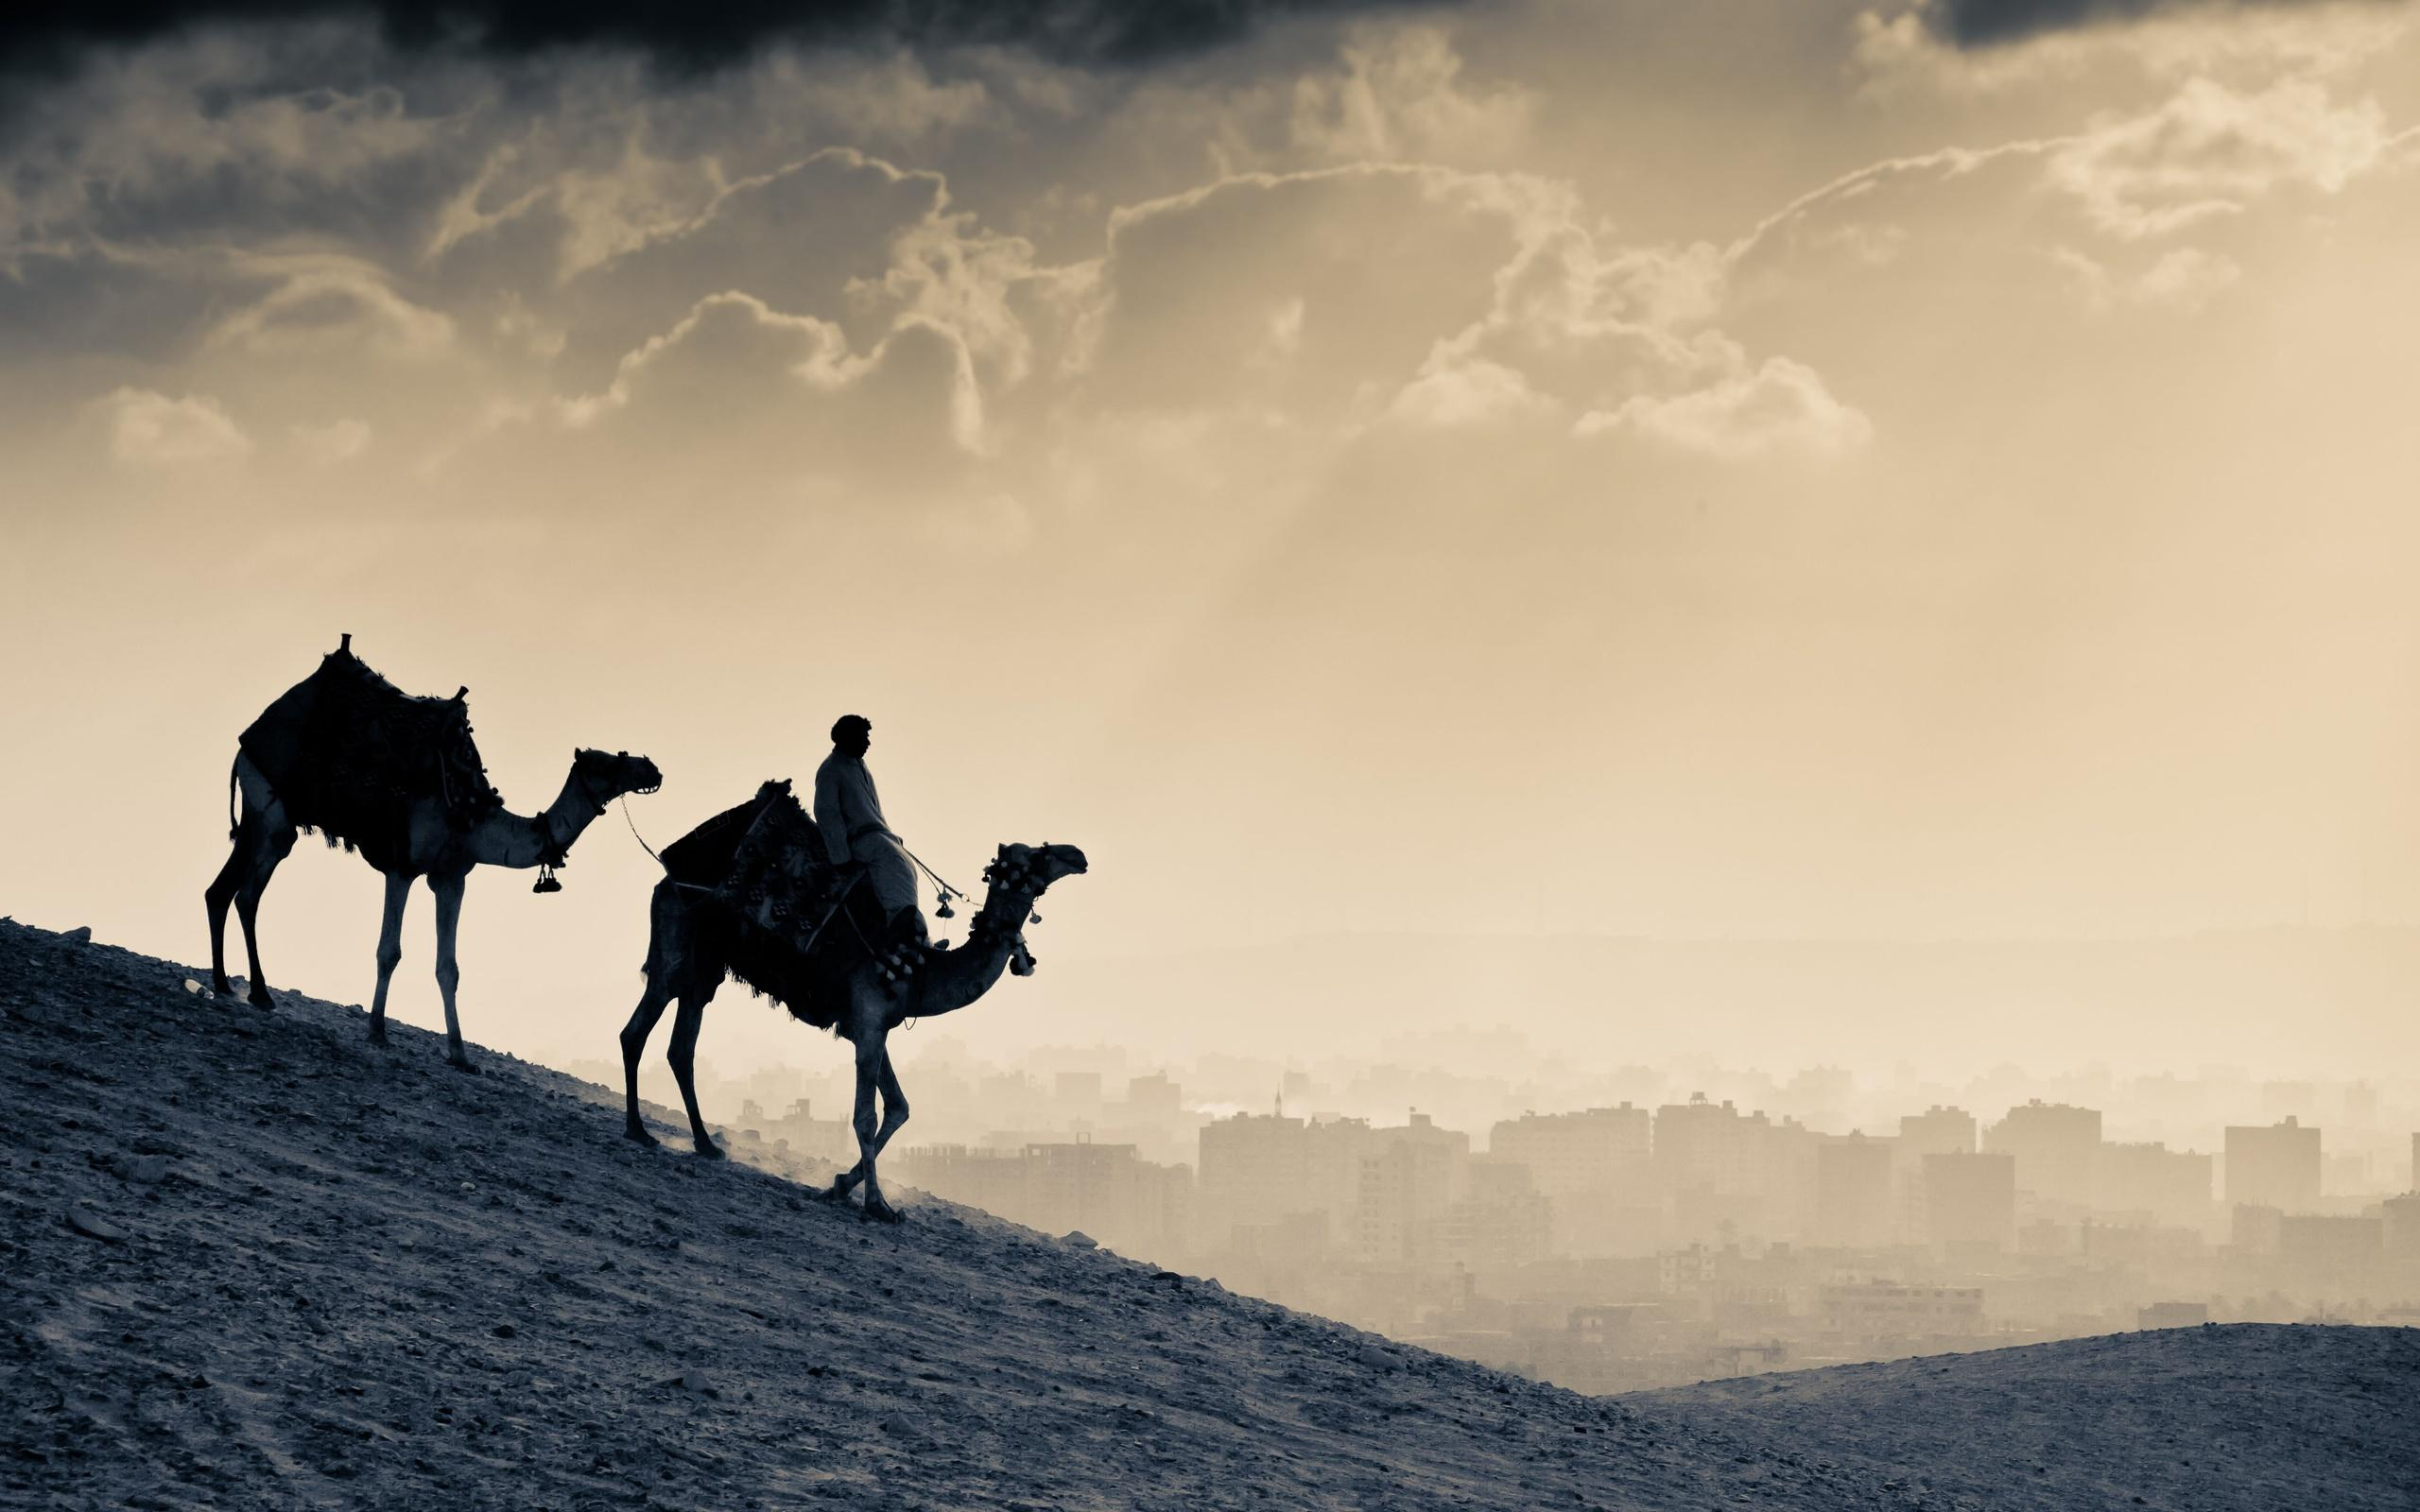 Arab People Camels, HD World, 4k Wallpapers, Image, Backgrounds